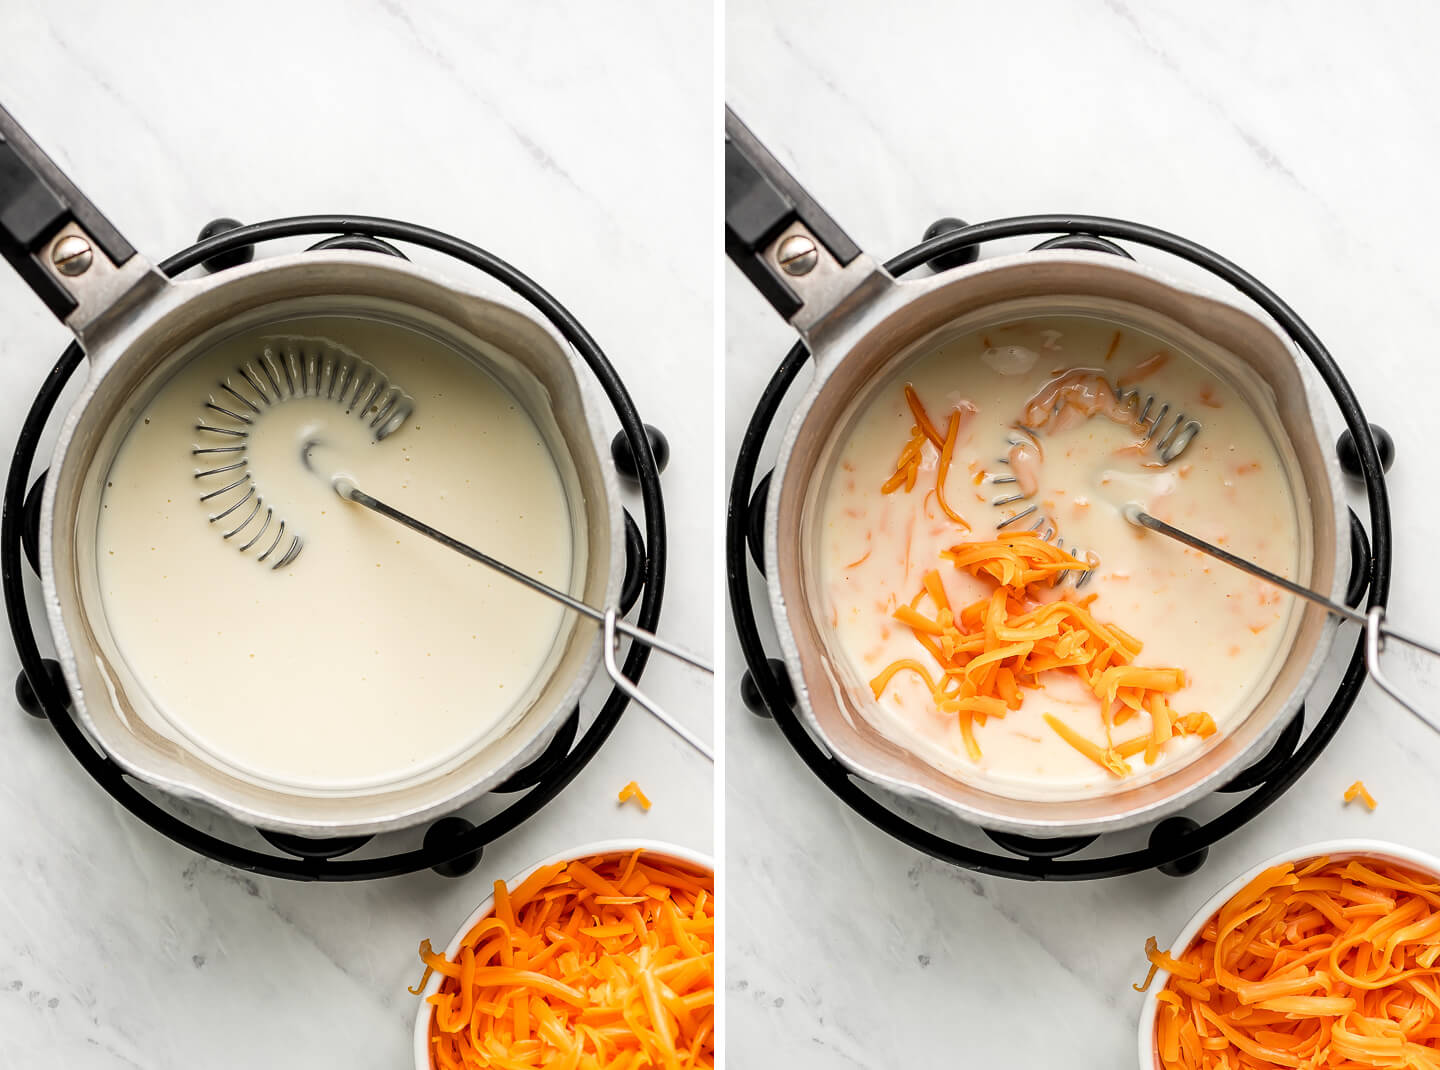 Process shots of adding shredded cheddar cheese to a béchamel to make a mornay sauce.